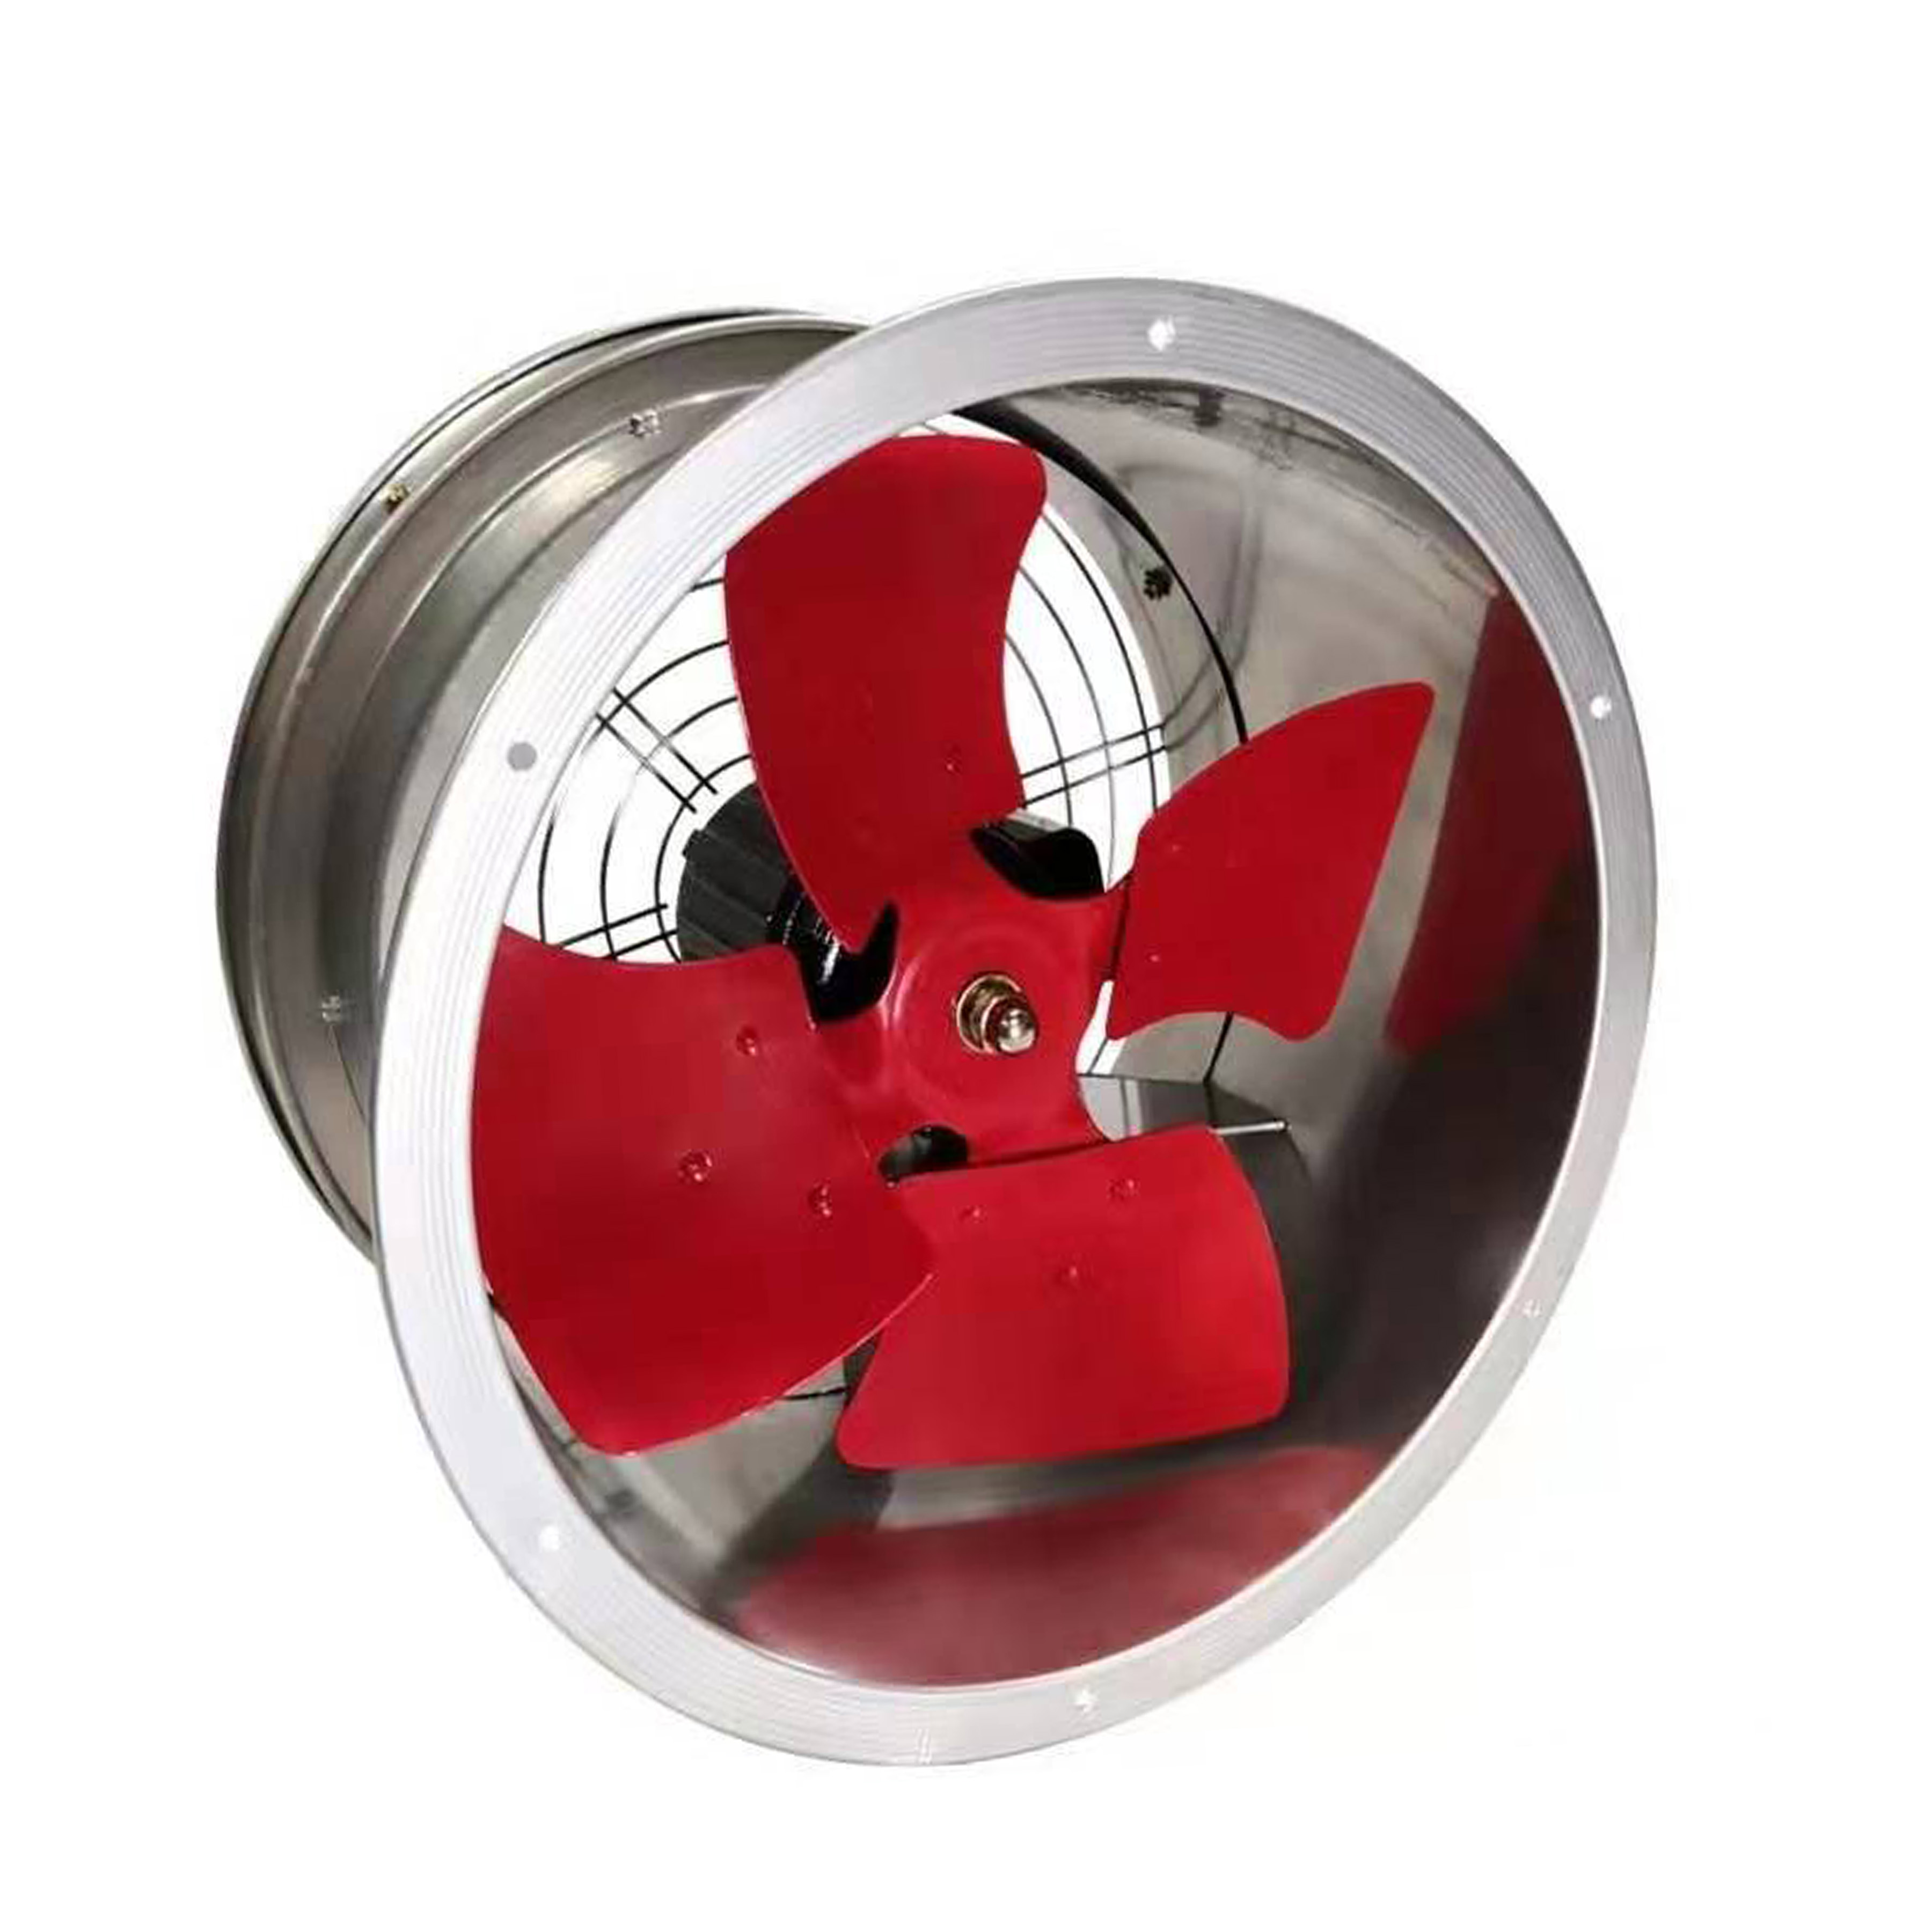 industrial large aixal fan <strong>portable</strong> smoke exhaust tube axial fan for building <strong>ventilation</strong>